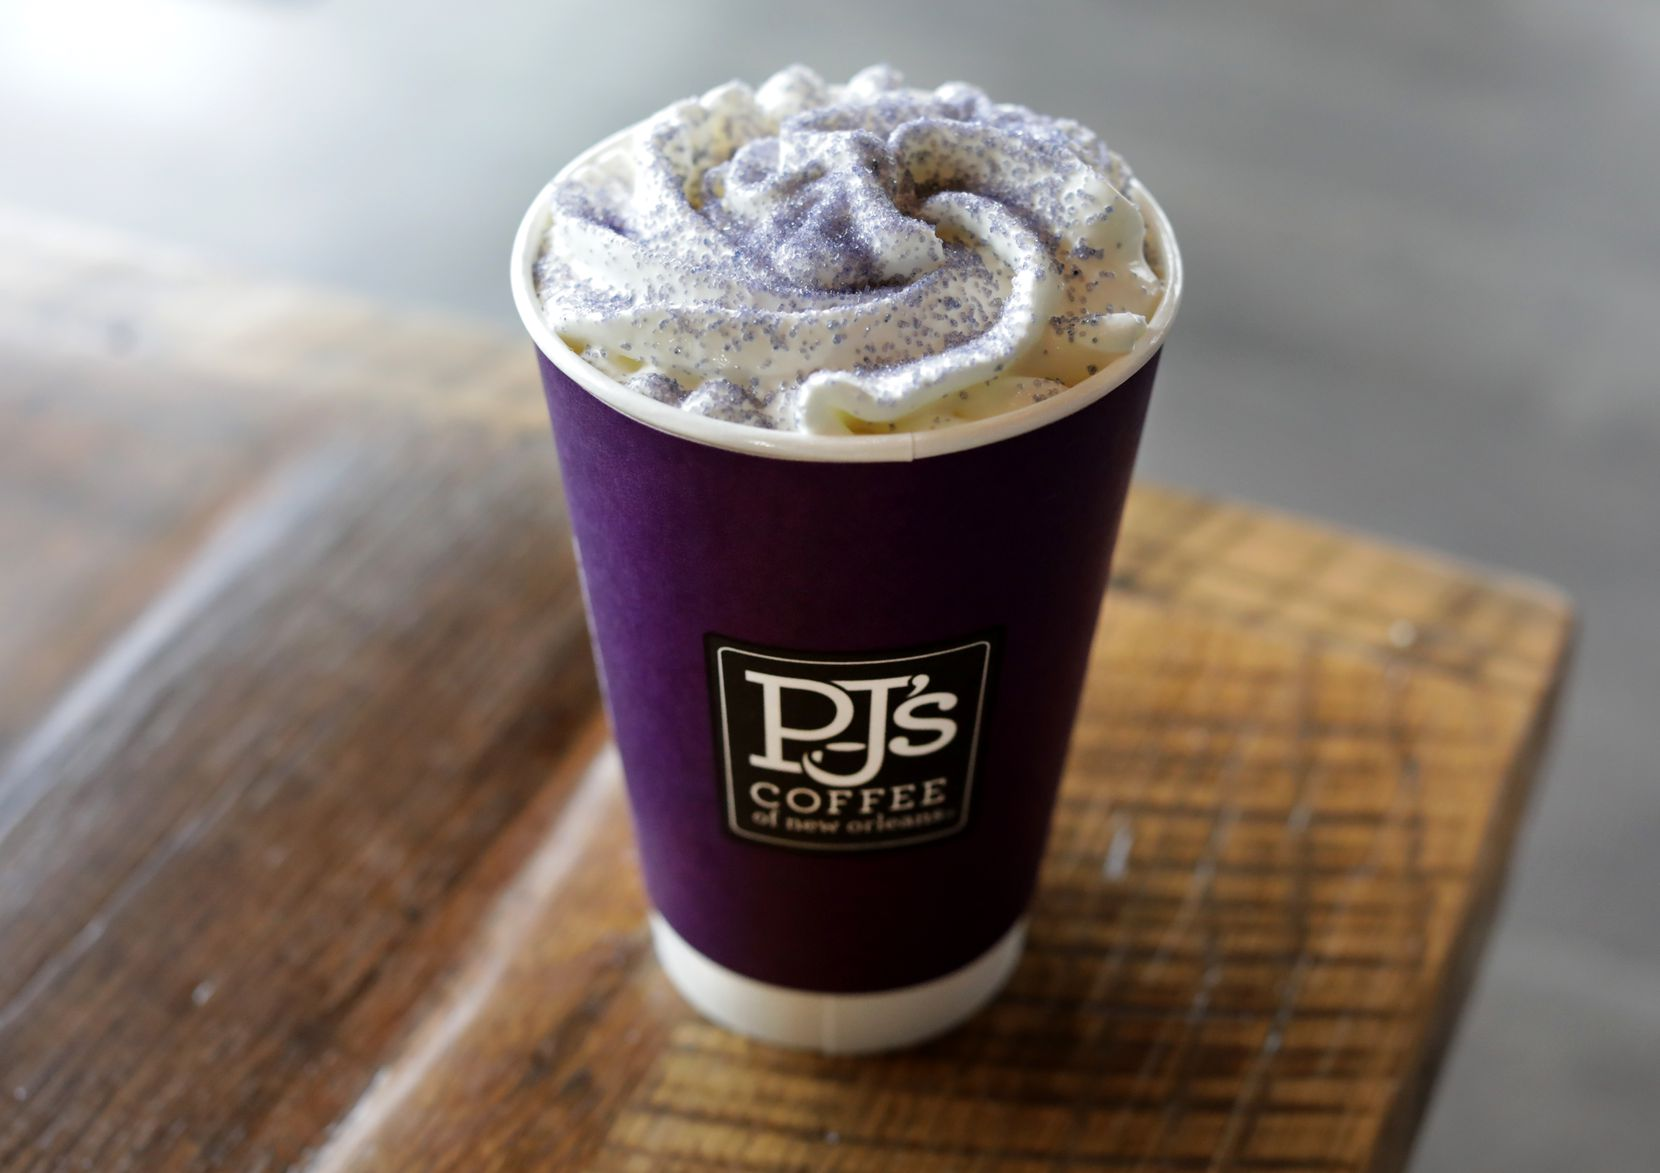 The king cake latte at PJ's is seasonal, available until the end of February.